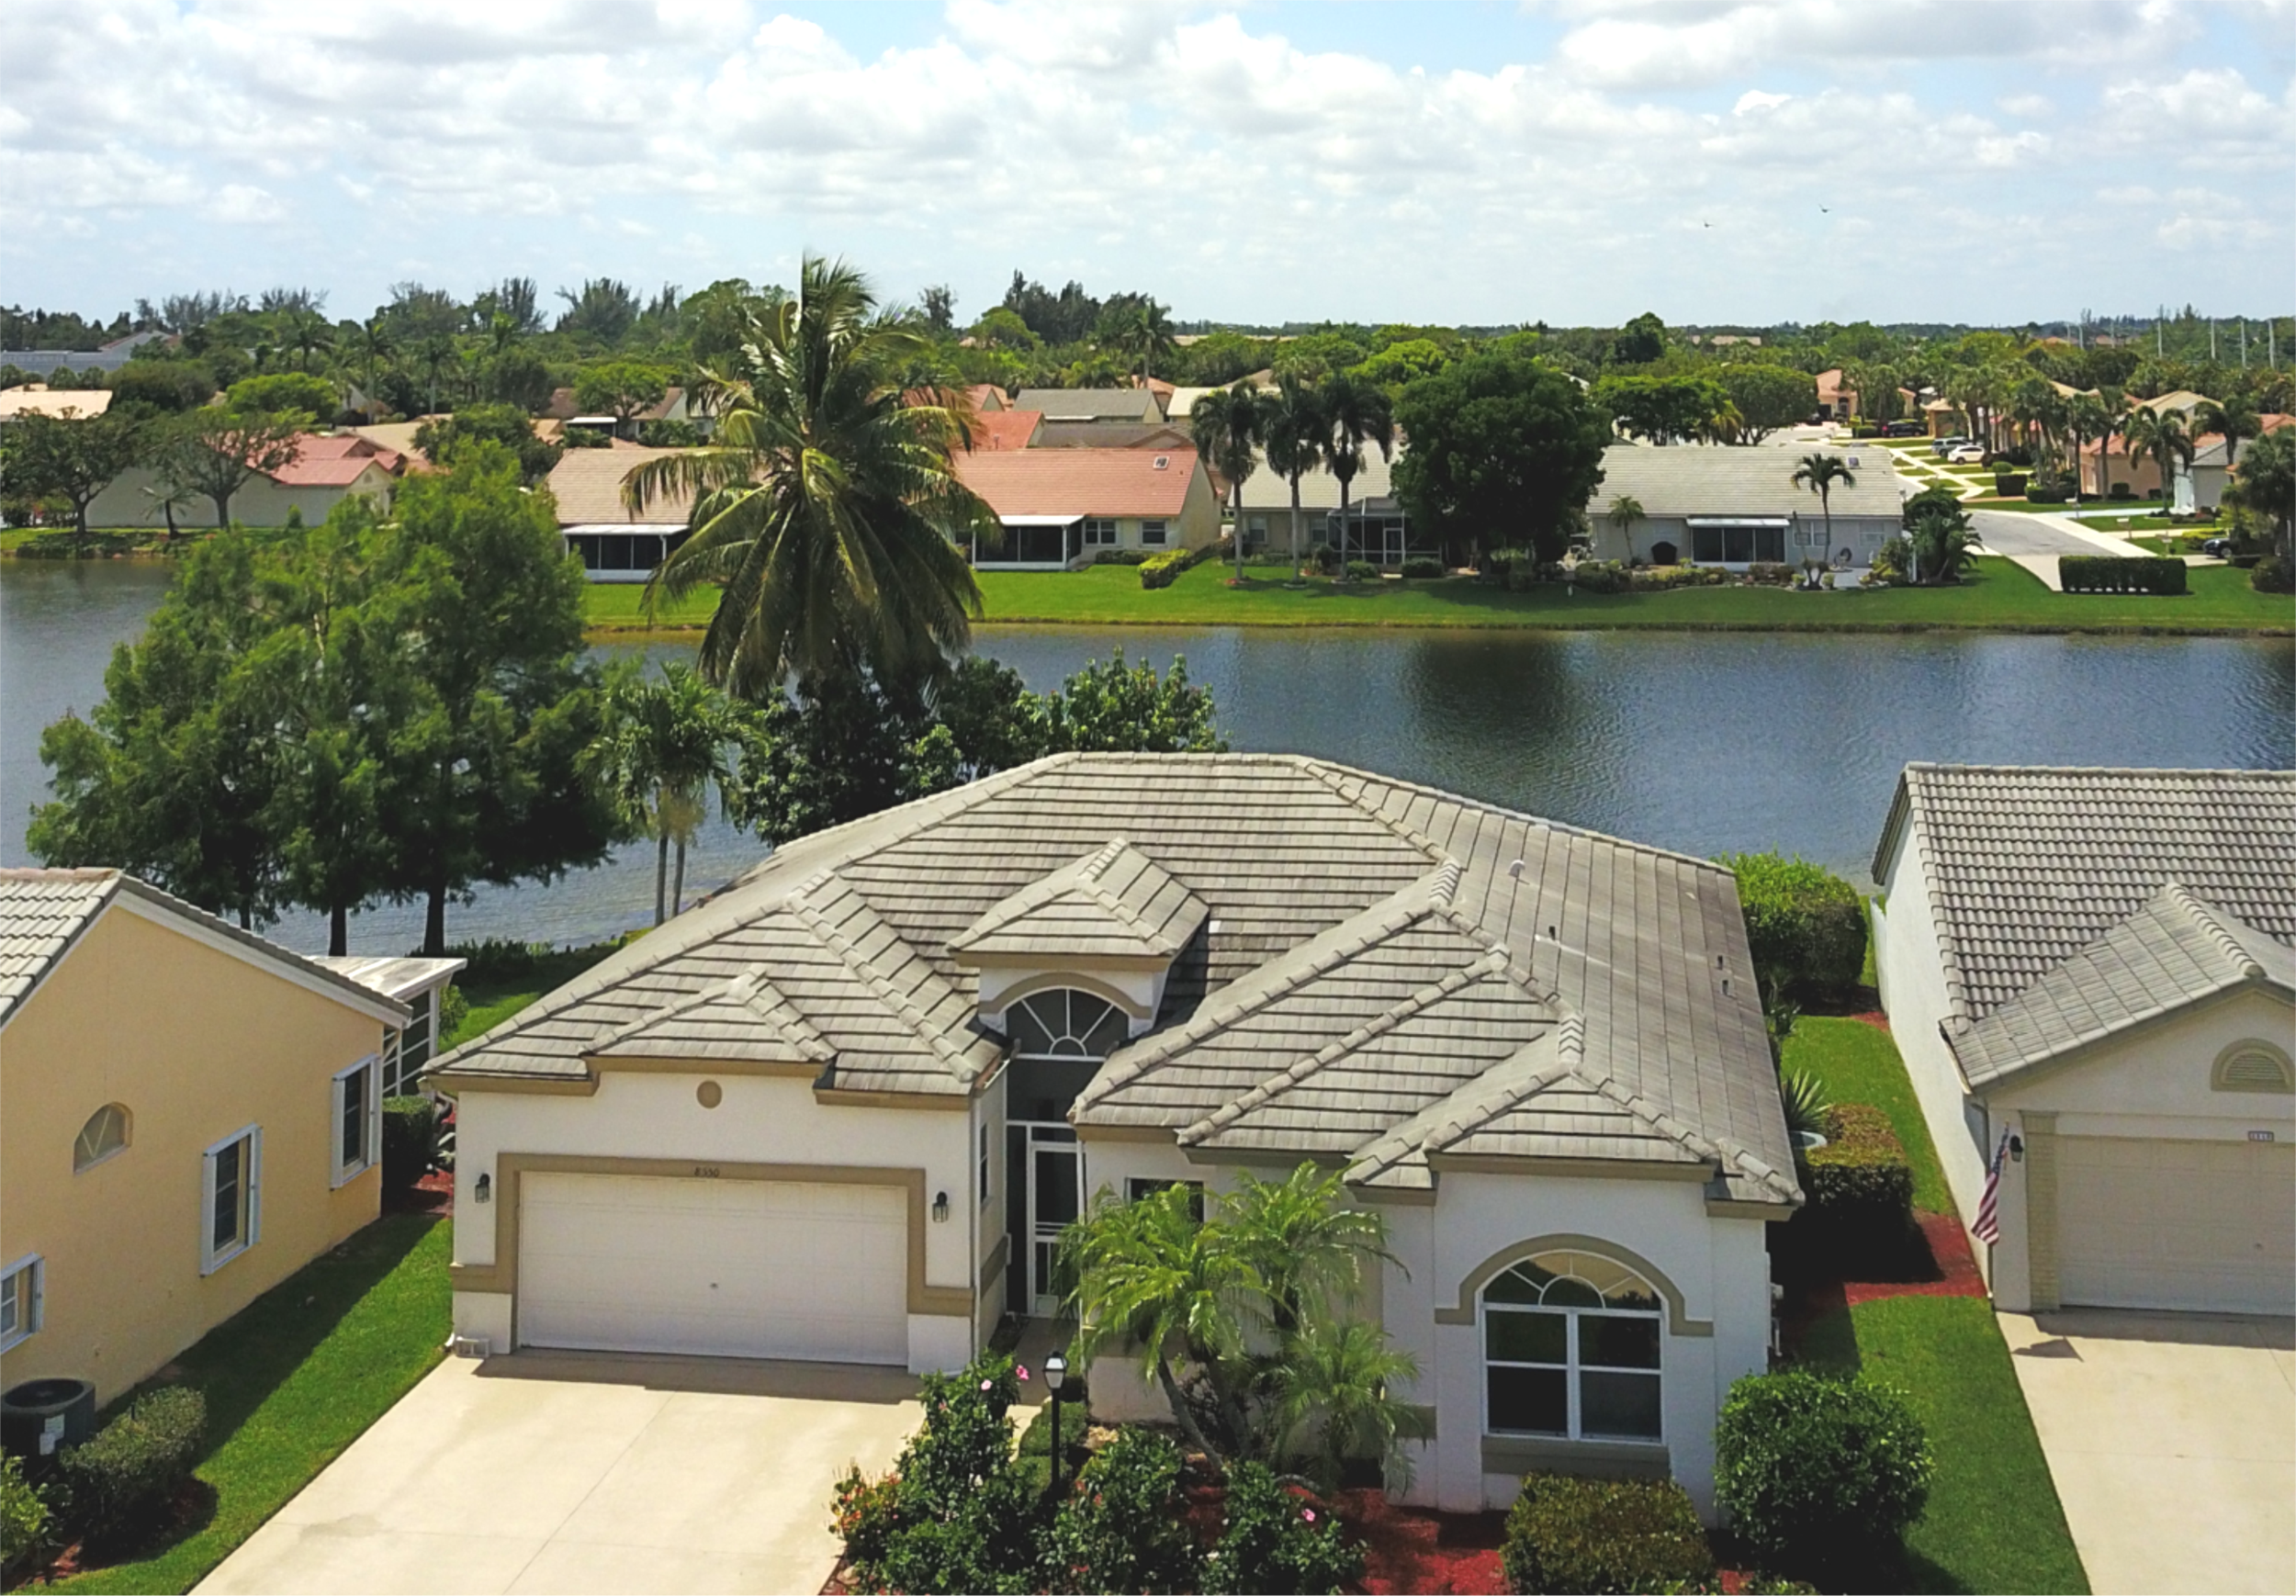 Welcome to 8550 Lake Cypress Road in West Lake Worth  Sweeping 270 degree water views in this delightful 3 BR, 2 BA CBS home. You will marvel at the tranquil, panoramic water vistas! Premium homesite in a sought-after, gated 55+ community. Spacious open floor plan ~ 1,921 sq ft under air. Ample windows illuminate the space with natural light, making the home feel extra bright & airy. Florida room with floor-to-ceiling sliders. Efficiently designed Kitchen with new SS fridge. Eat-In Breakfast Area and bay window. Large Master Suite with walk in closets. Master Bath with dual sink vanity, oversized garden tub & separate shower. Tile & laminate flooring (new) throughout. 2 car garage with extended driveway. Large open patio -- did we mention the fabulous water views? Wonderful home, outstanding community, great location.